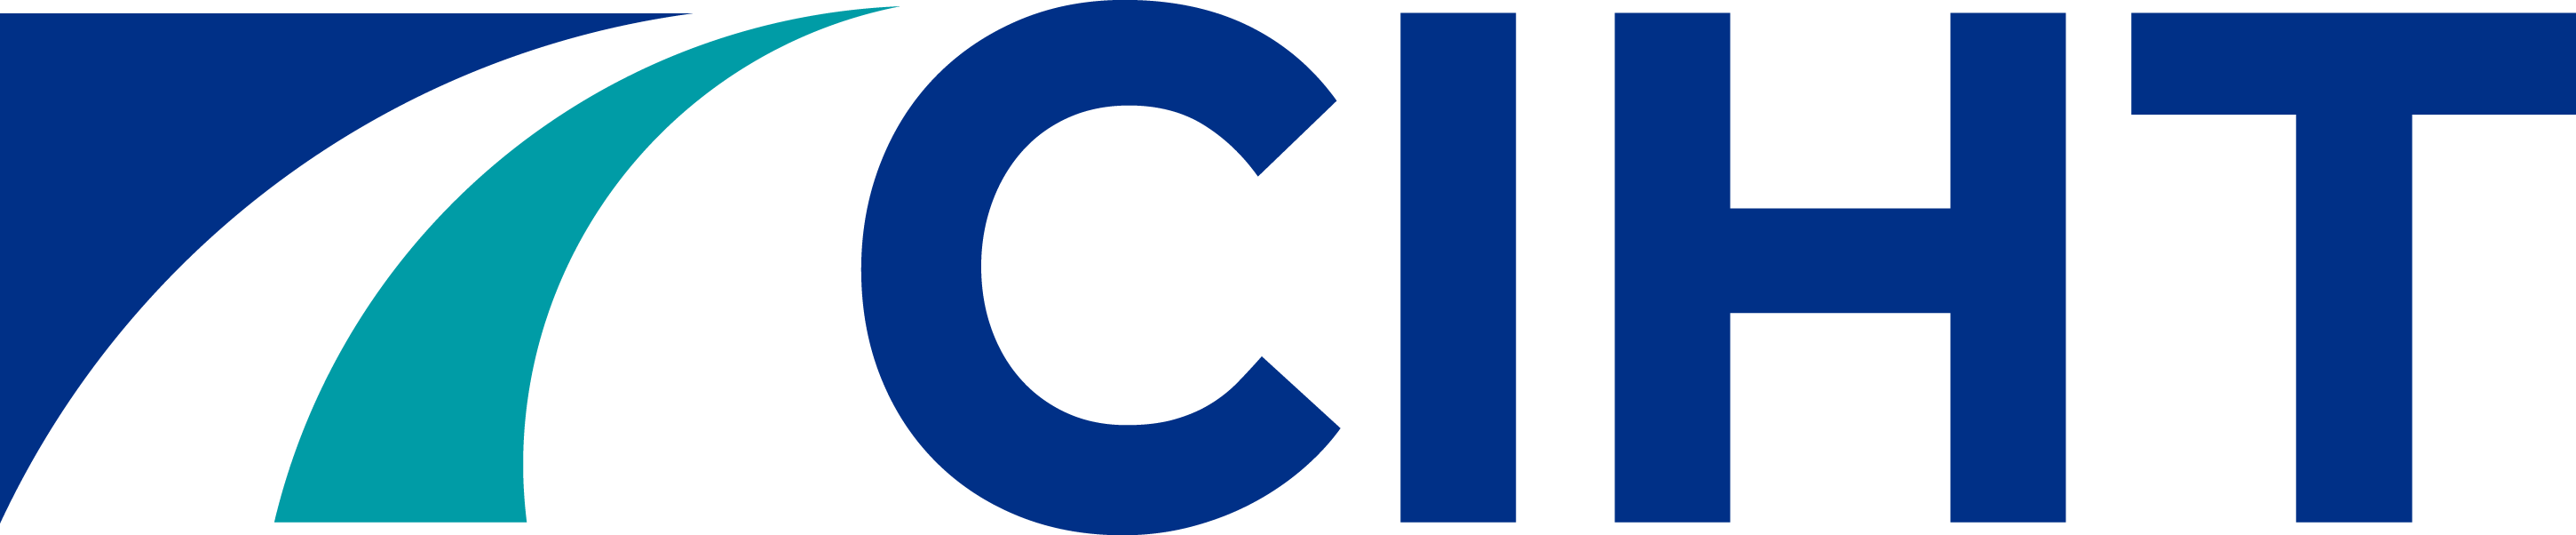 CITH (Corporate Member of the Chartered Institution of Highways and Transportation)